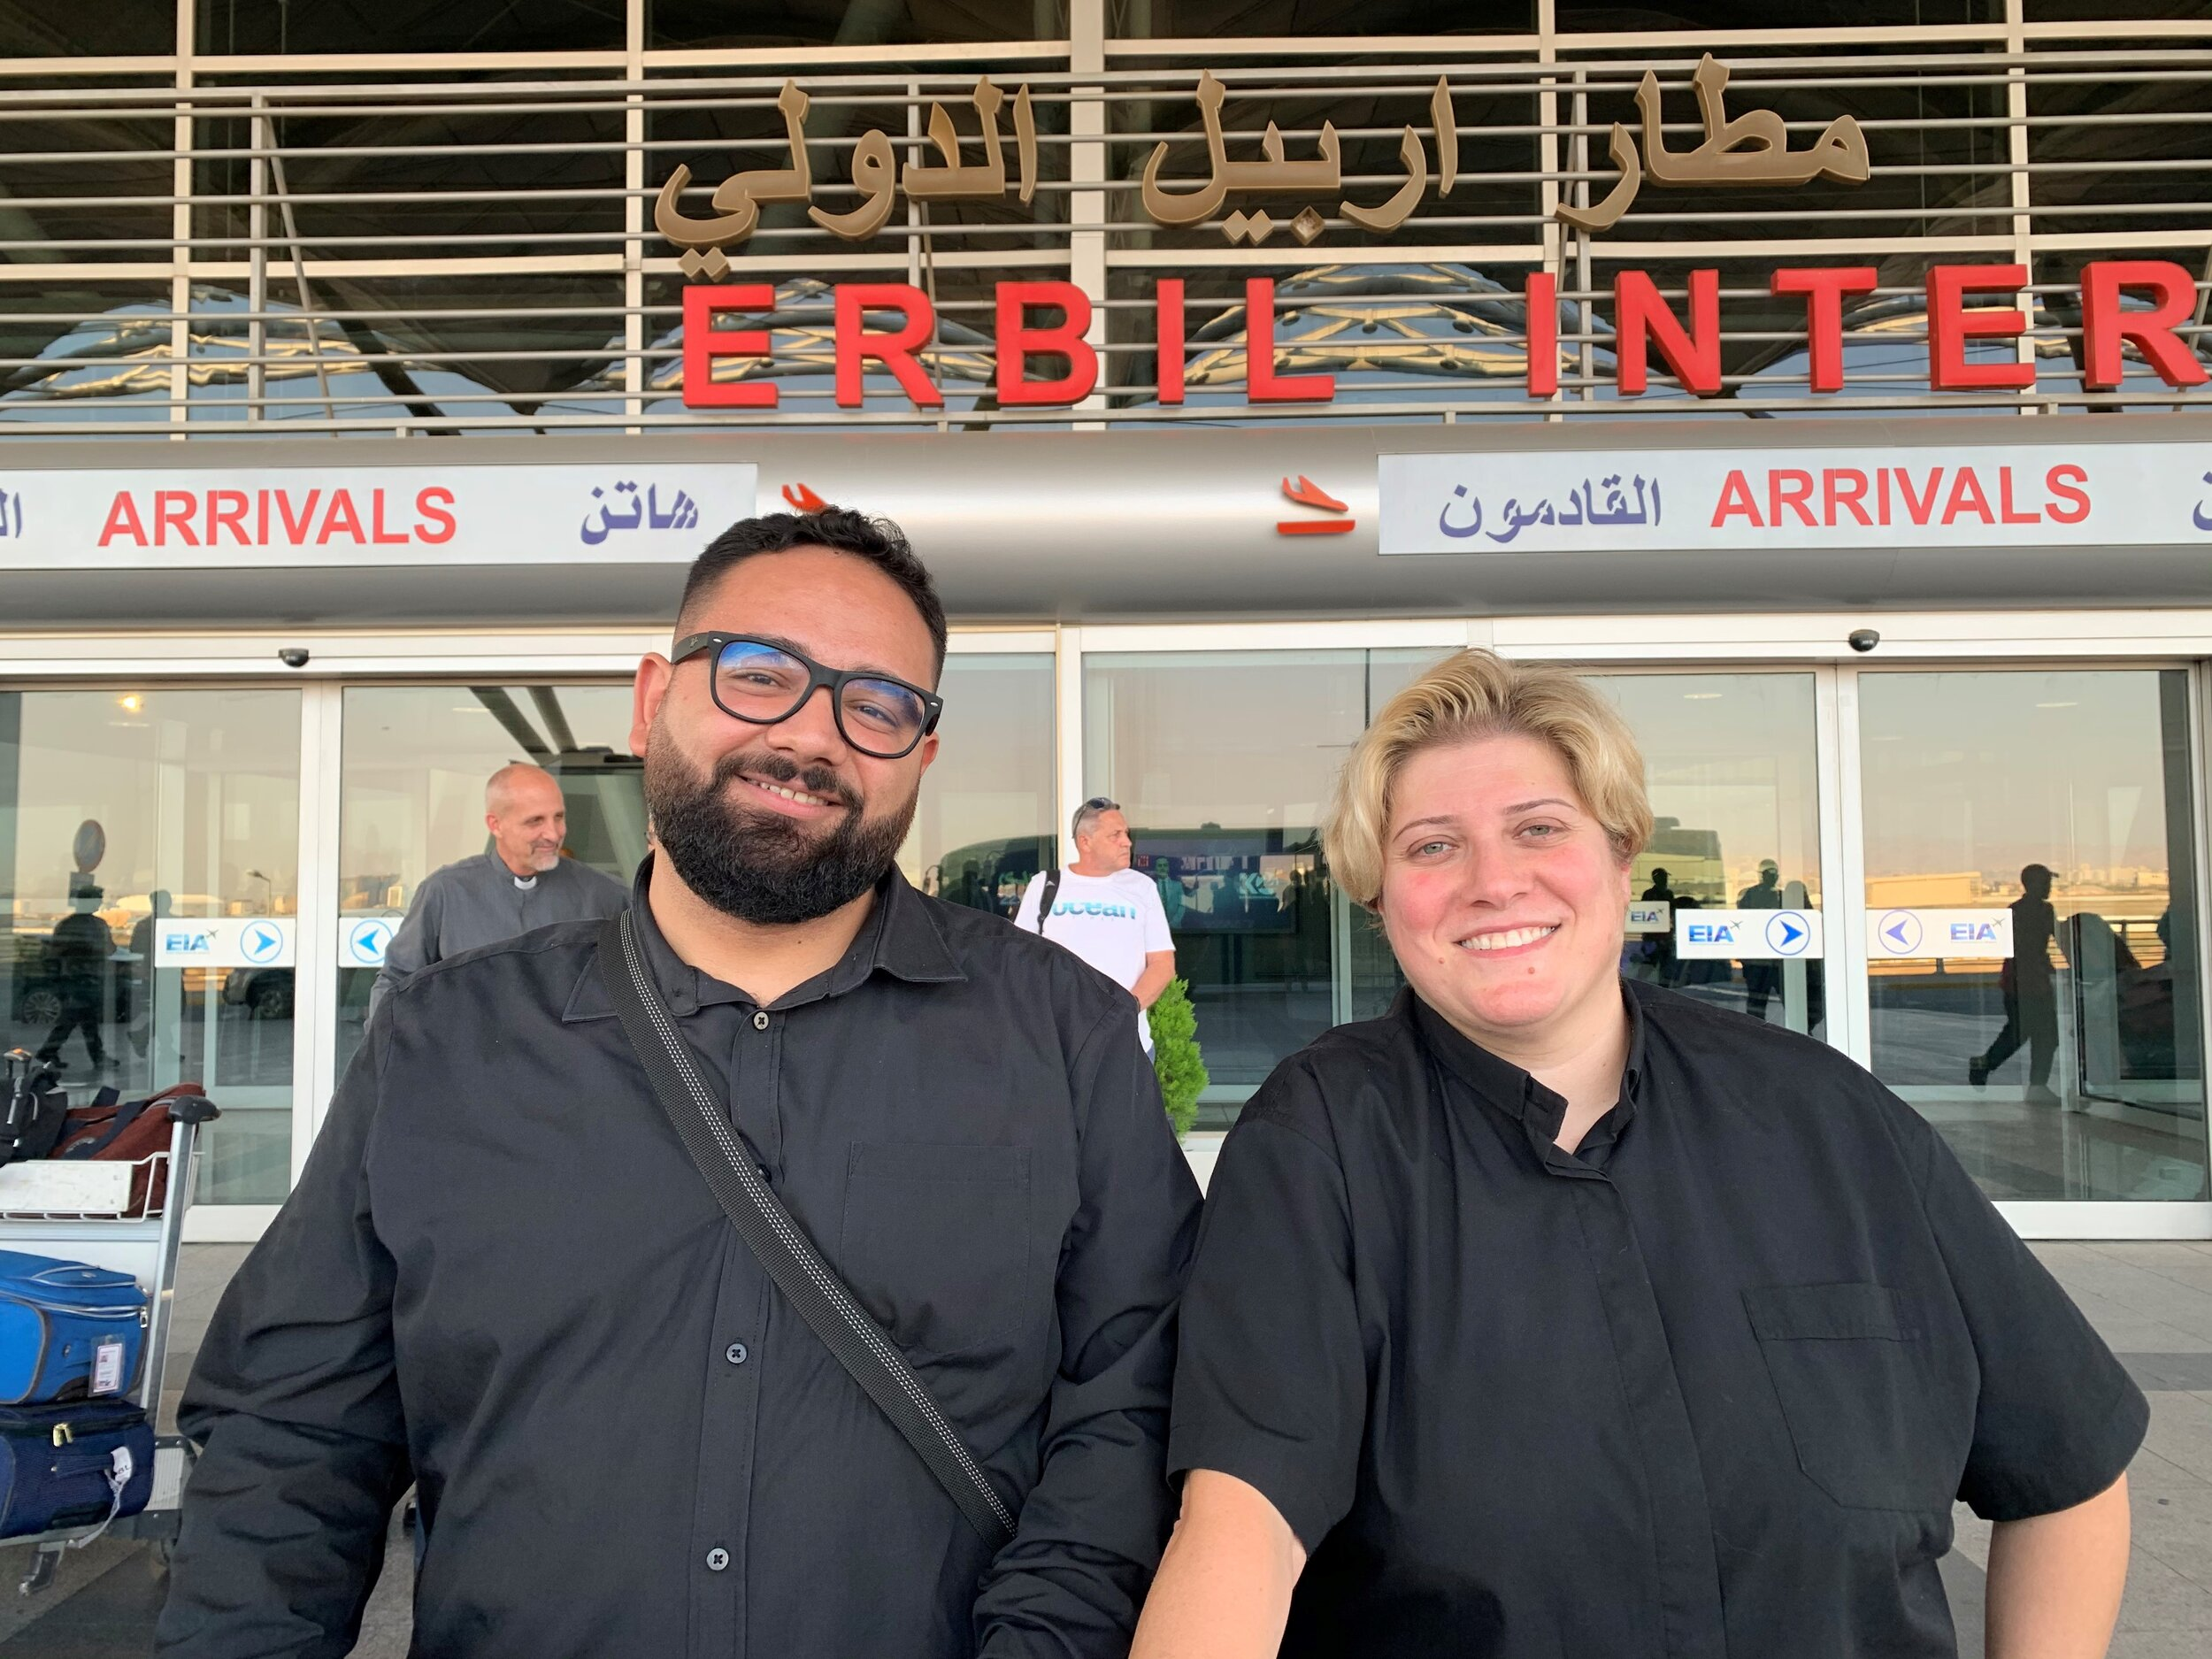 Arriving in Erbil with Adon Nouman and Rev Rola Sleiman, our partners from the National Evangelical Synod of Syria and Lebanon